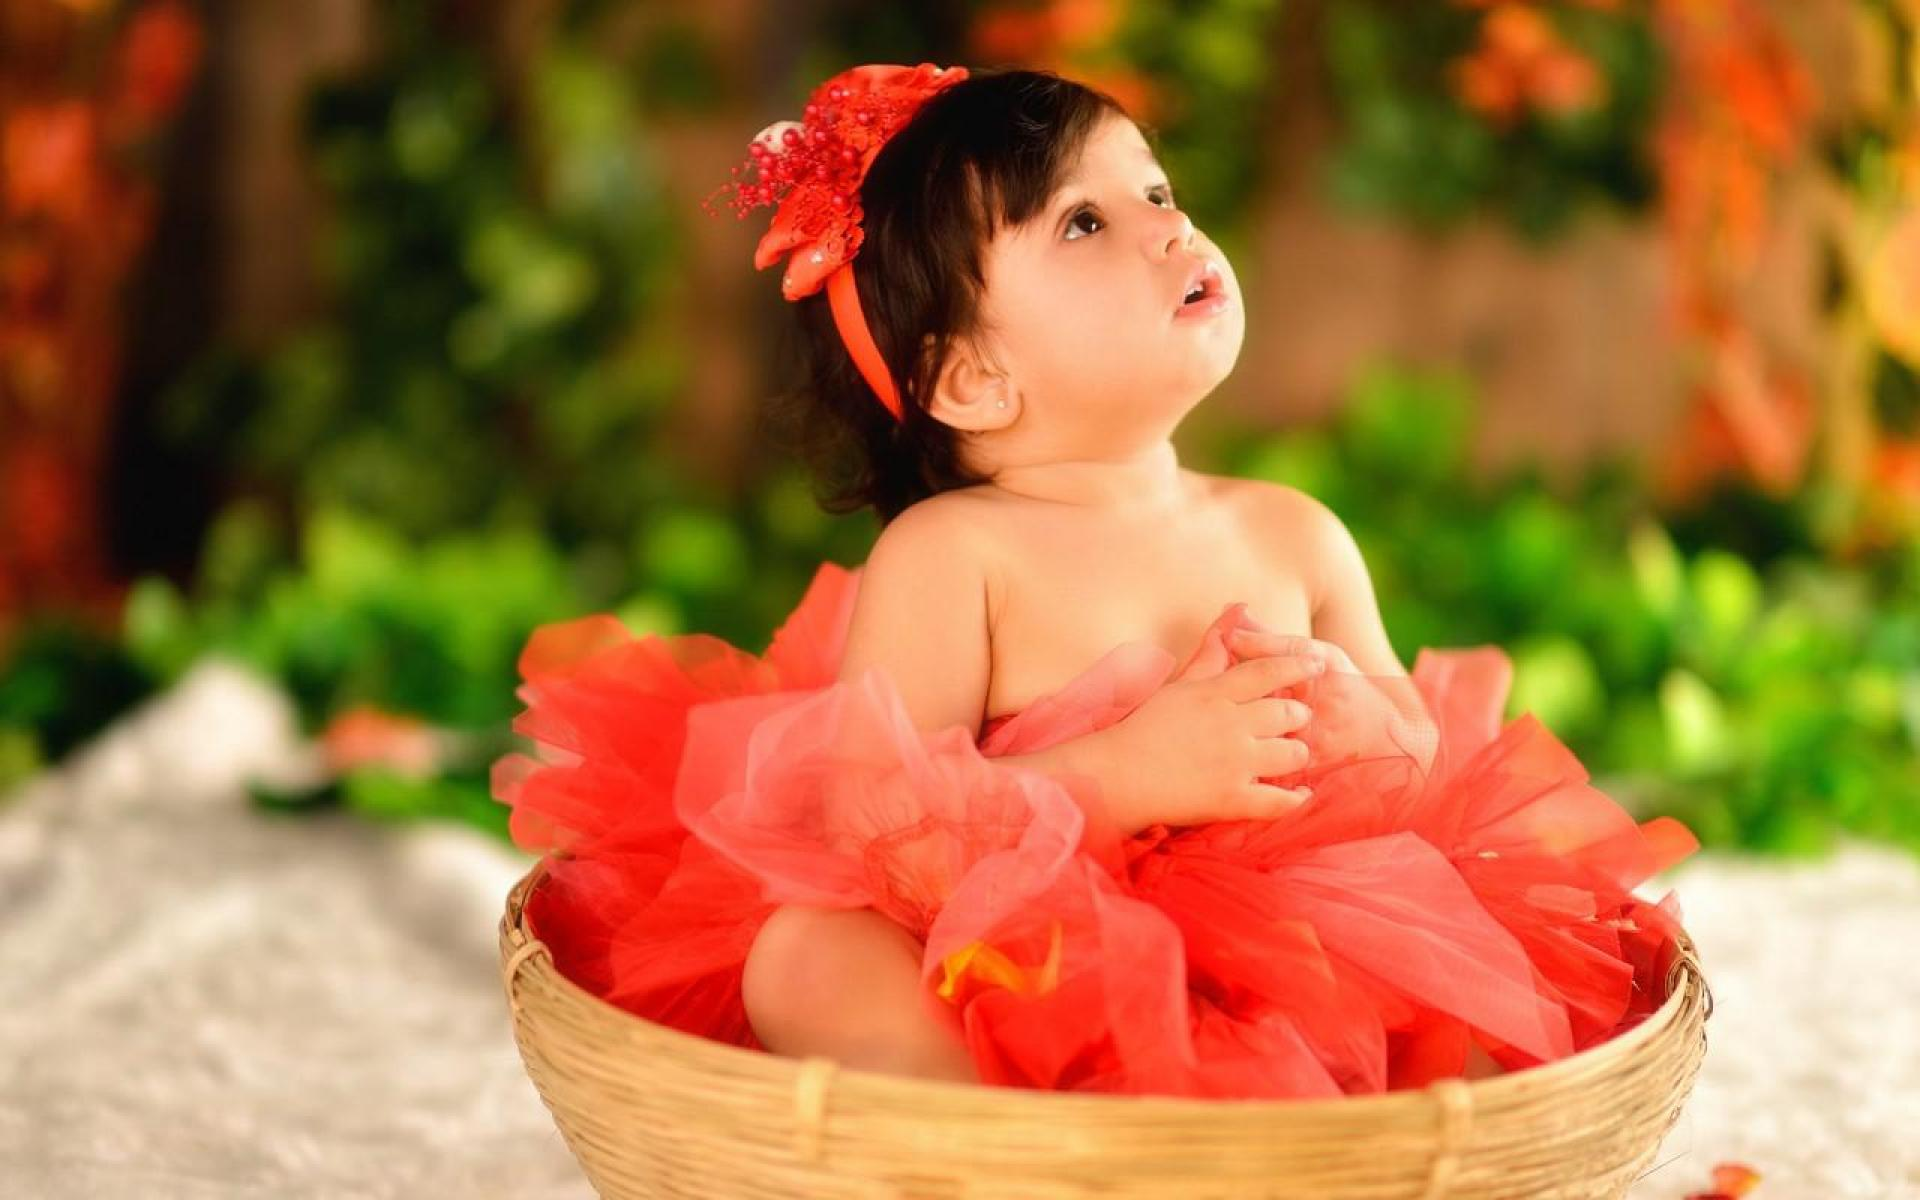 Download Cute Babies Wallpapers: Wallpaper, High Definition, High Quality